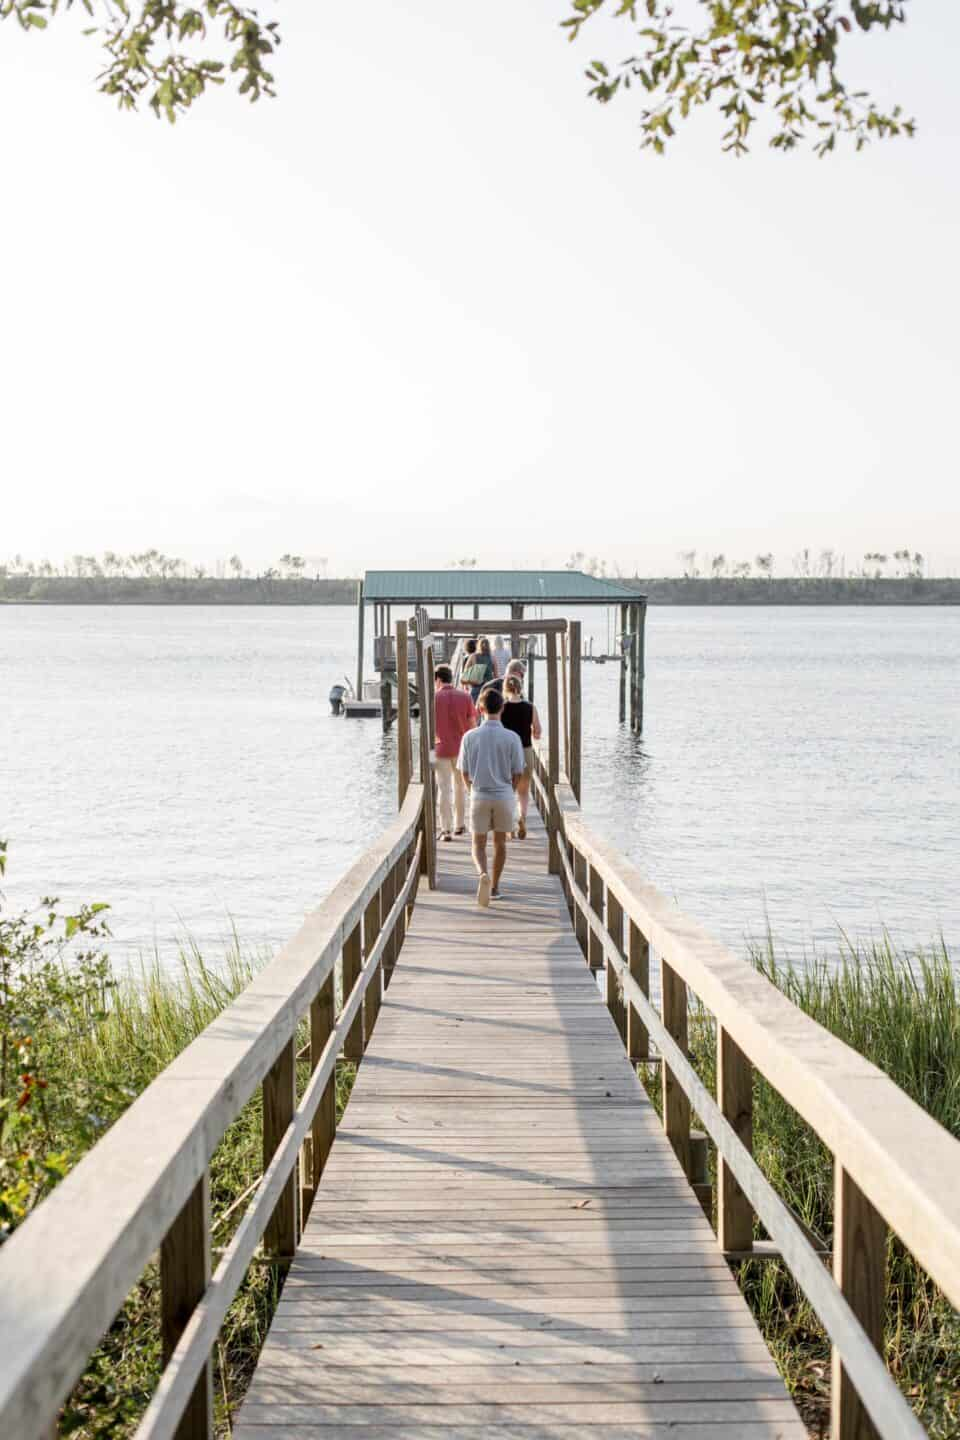 Mount Pleasant, SC Weekend Travel Guide